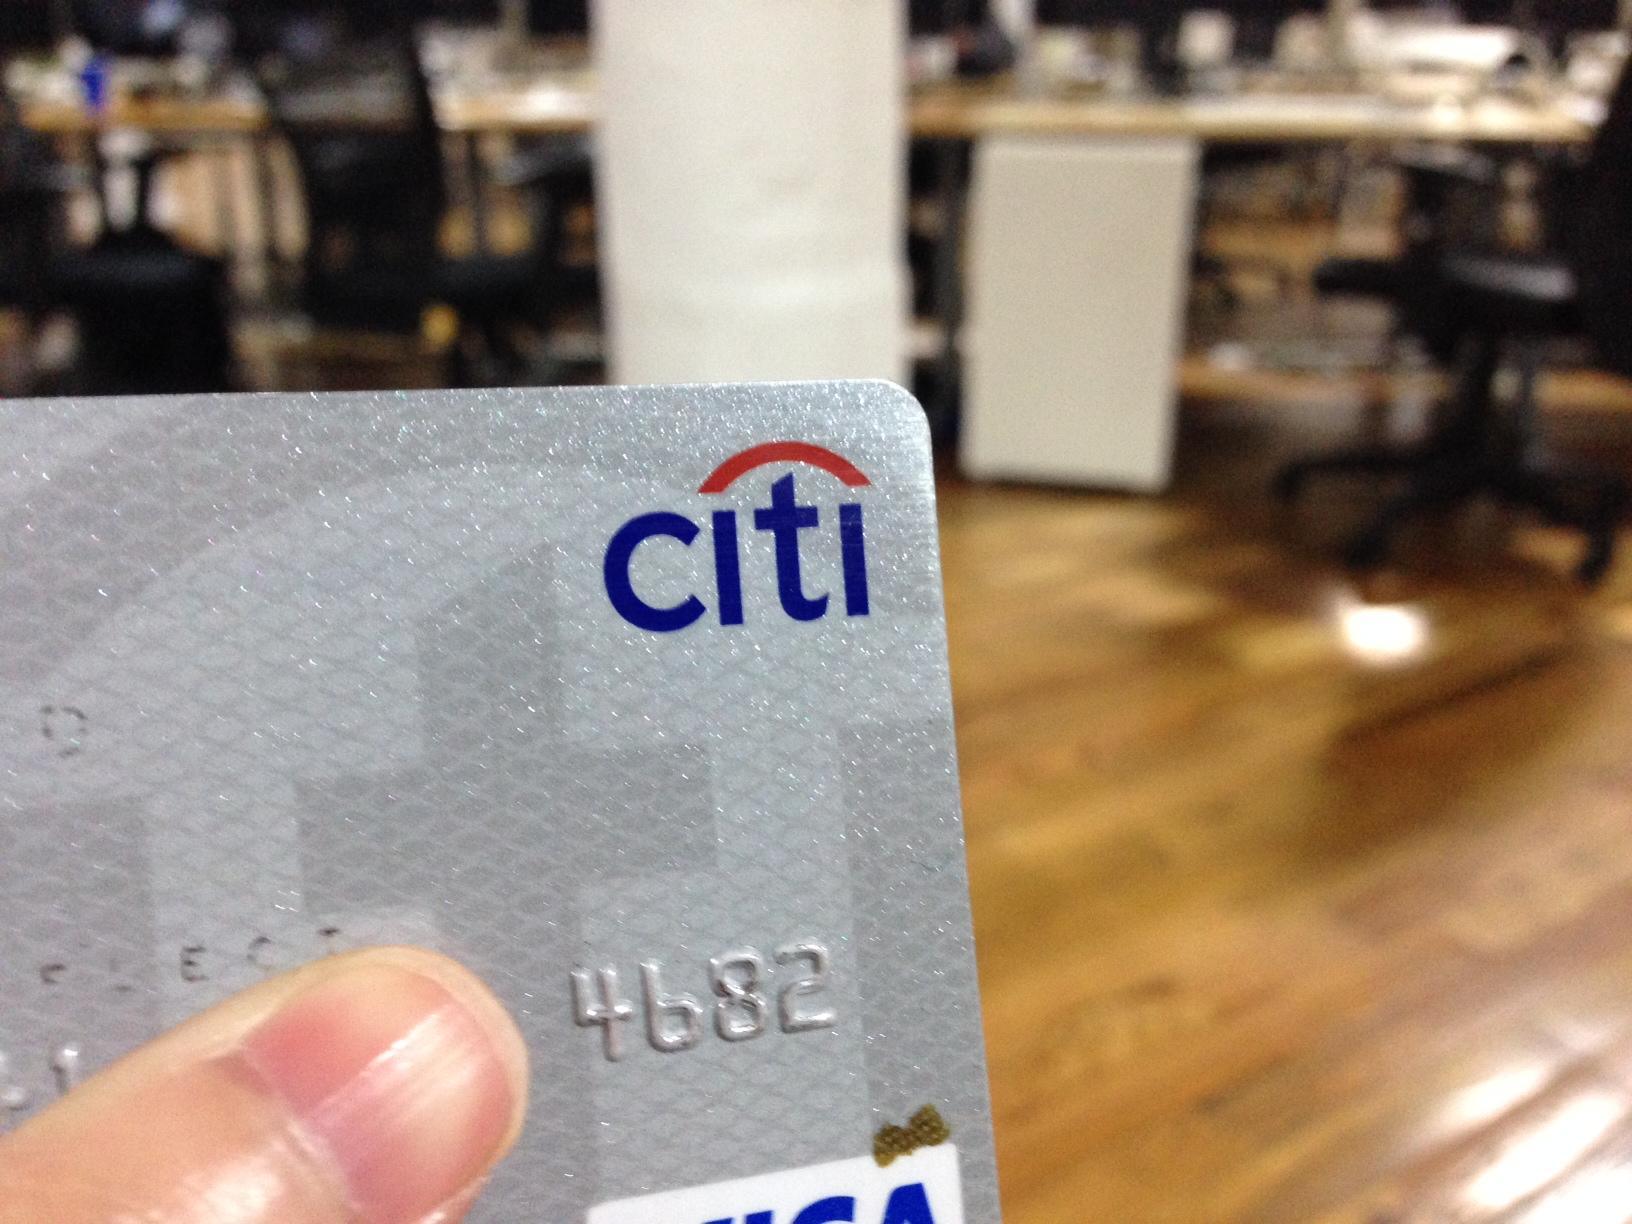 Citi to Begin Offering Free FICO Credit Scores to Credit Card Customers